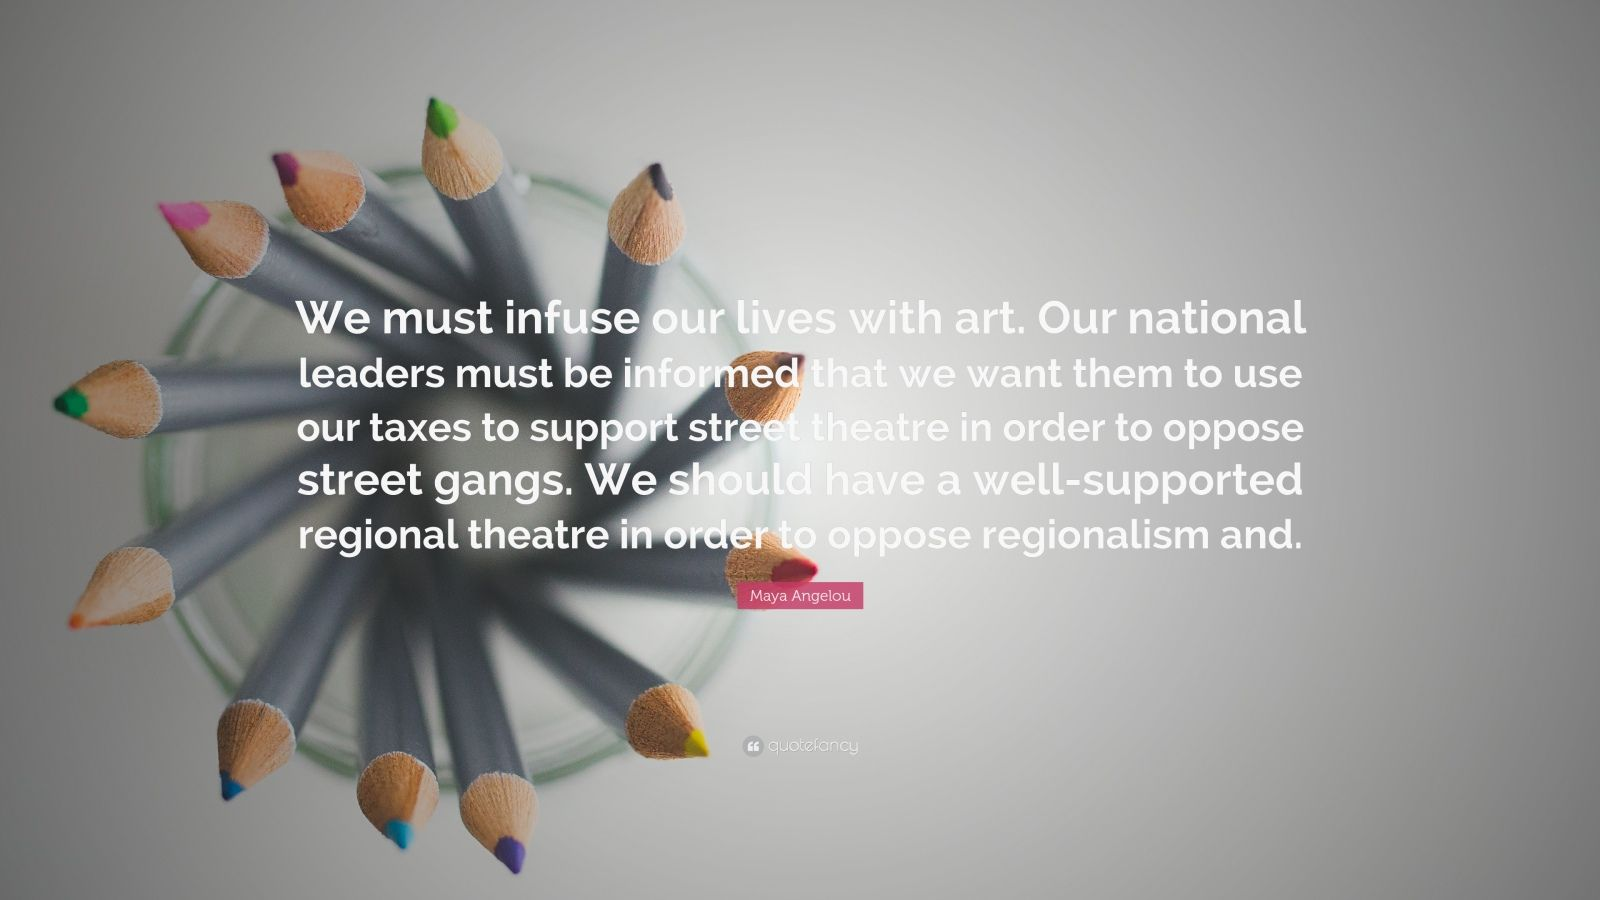 """Maya Angelou Quote: """"We must infuse our lives with art. Our national leaders must be informed that we want them to use our taxes to support street theatre in order to oppose street gangs. We should have a well-supported regional theatre in order to oppose regionalism and."""""""